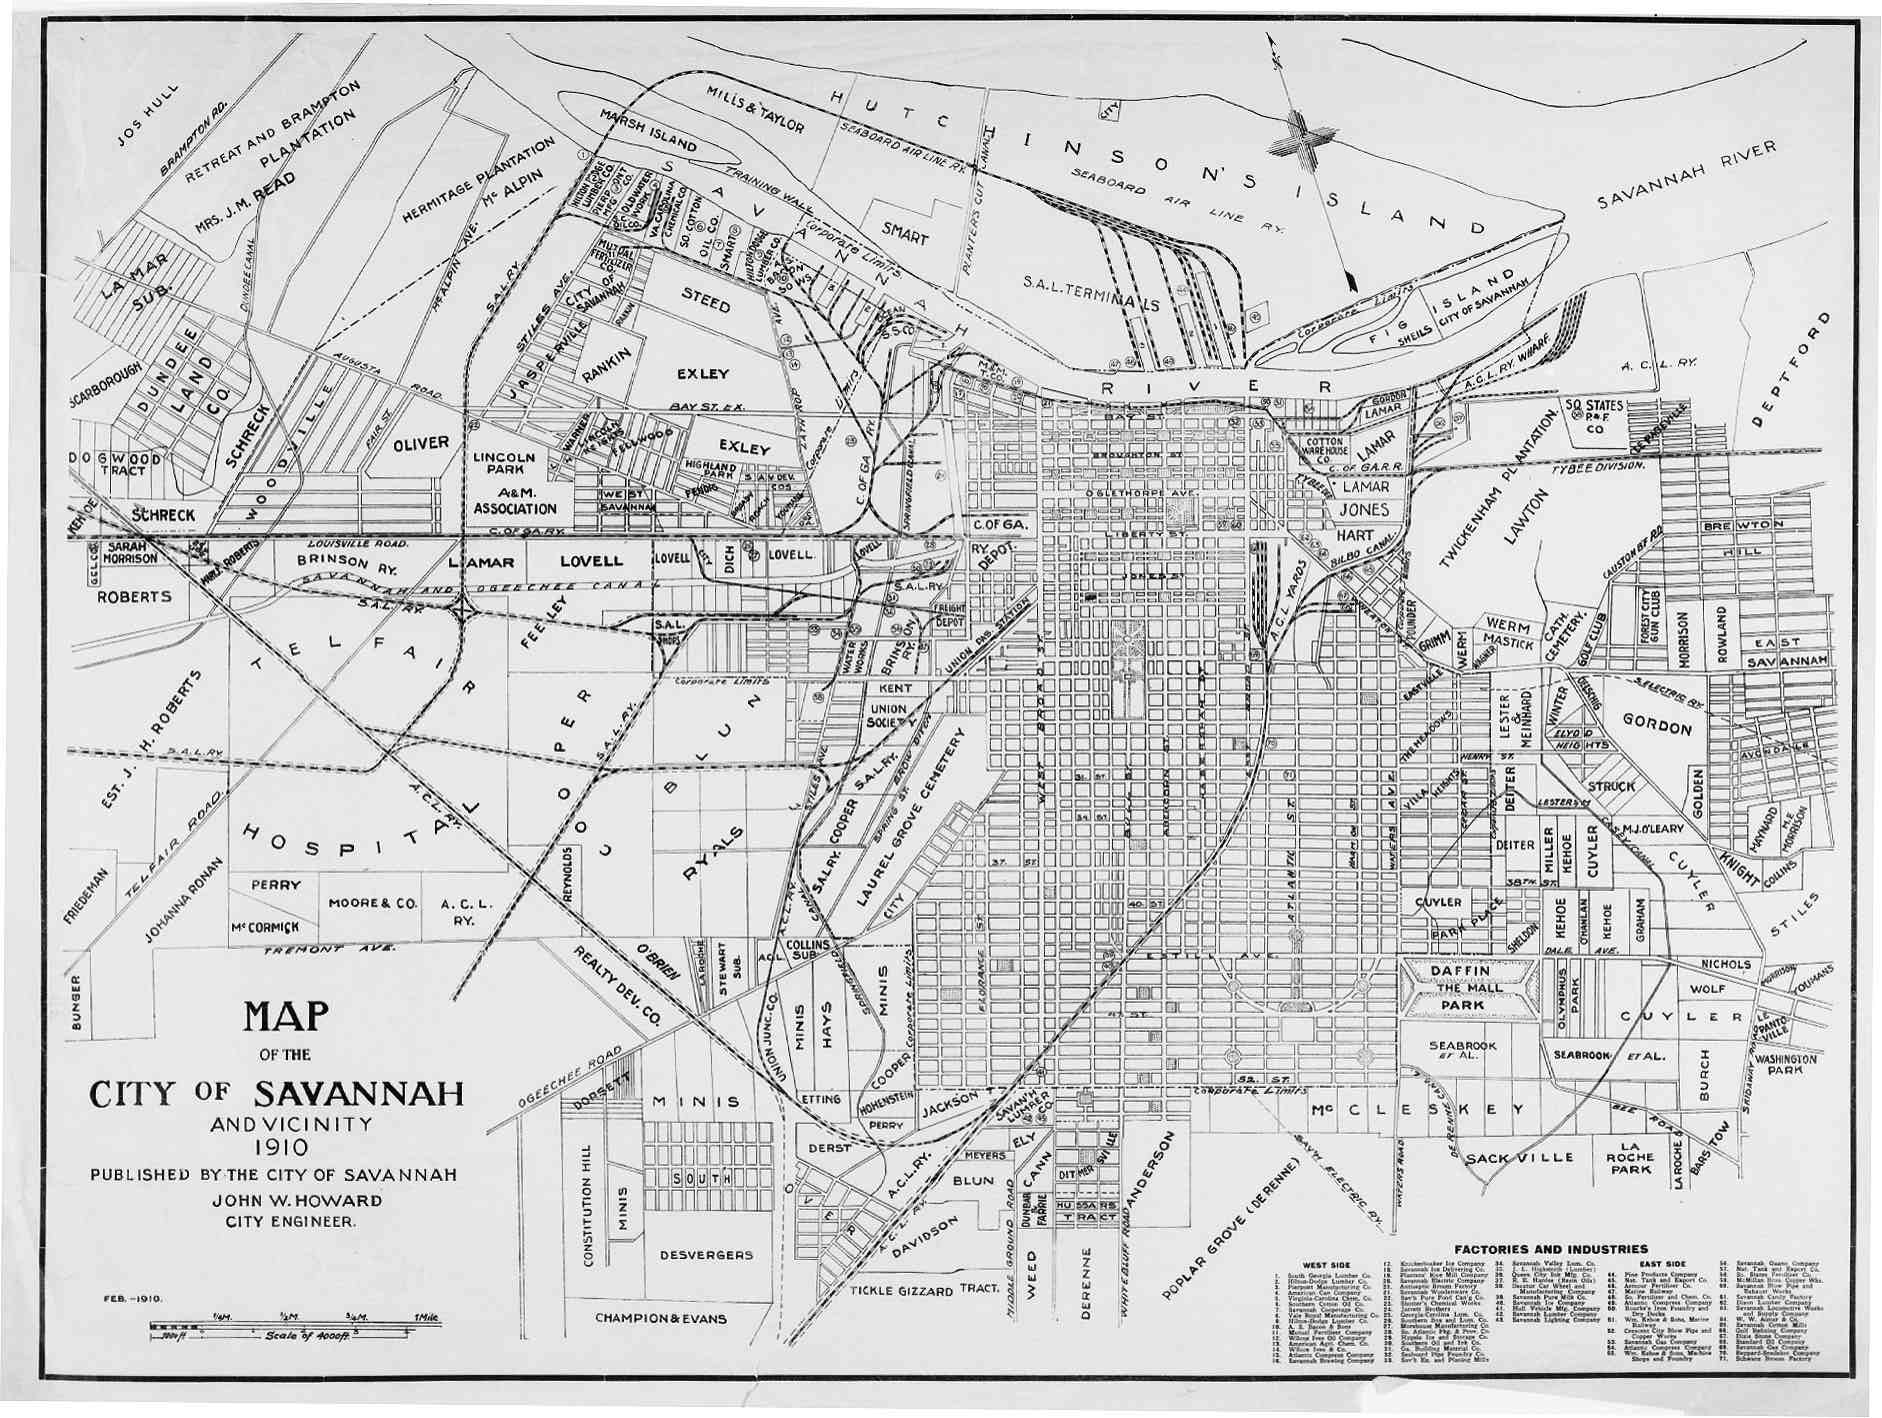 Hargrett Library Rare Map Collection Savannah the Coast